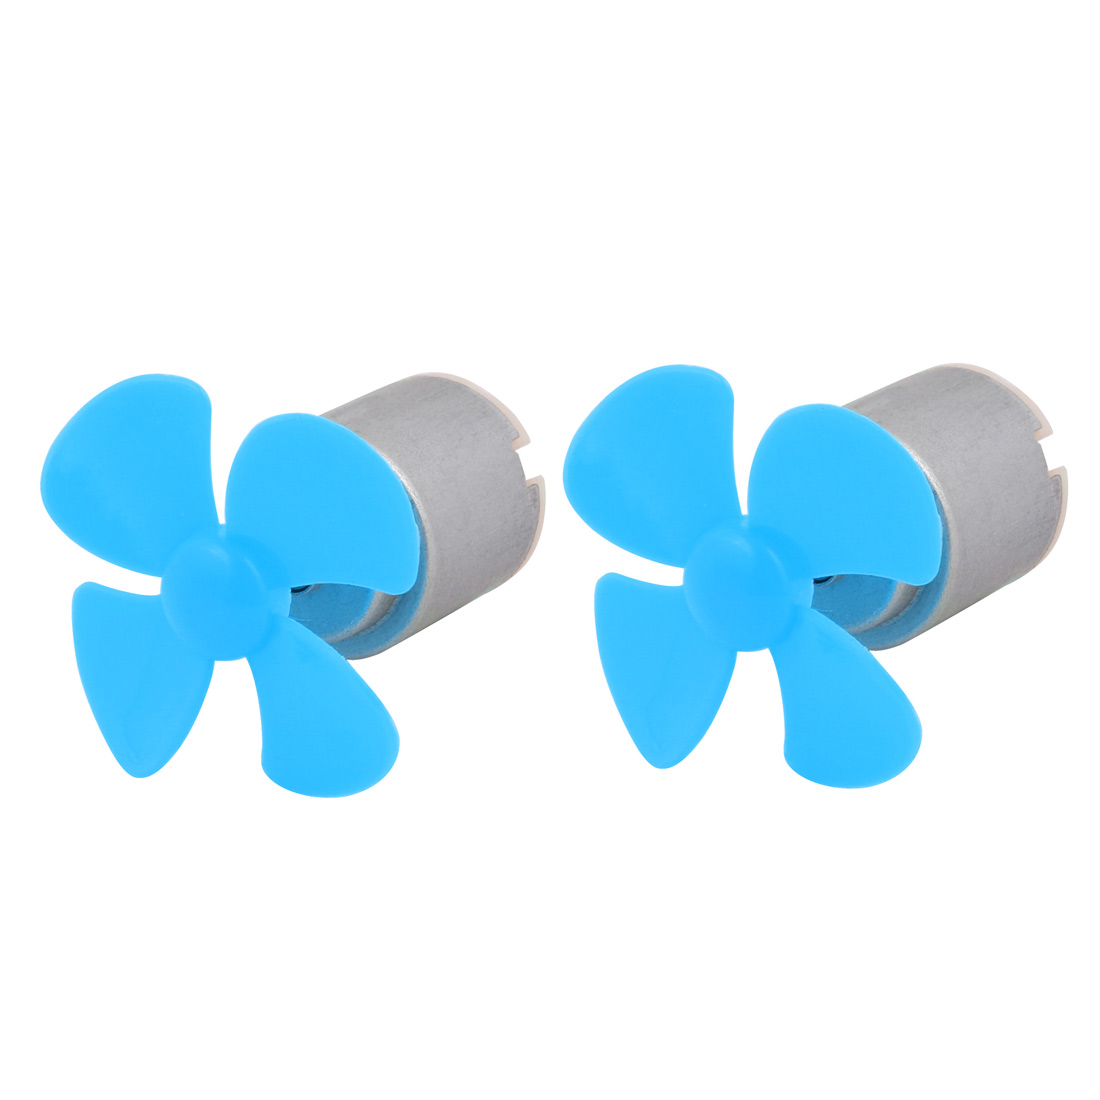 2pcs DC 3V 0.13A 11000RPM Strong Force Motor 4 Blades 40mm Blue Propeller for RC Aircraft